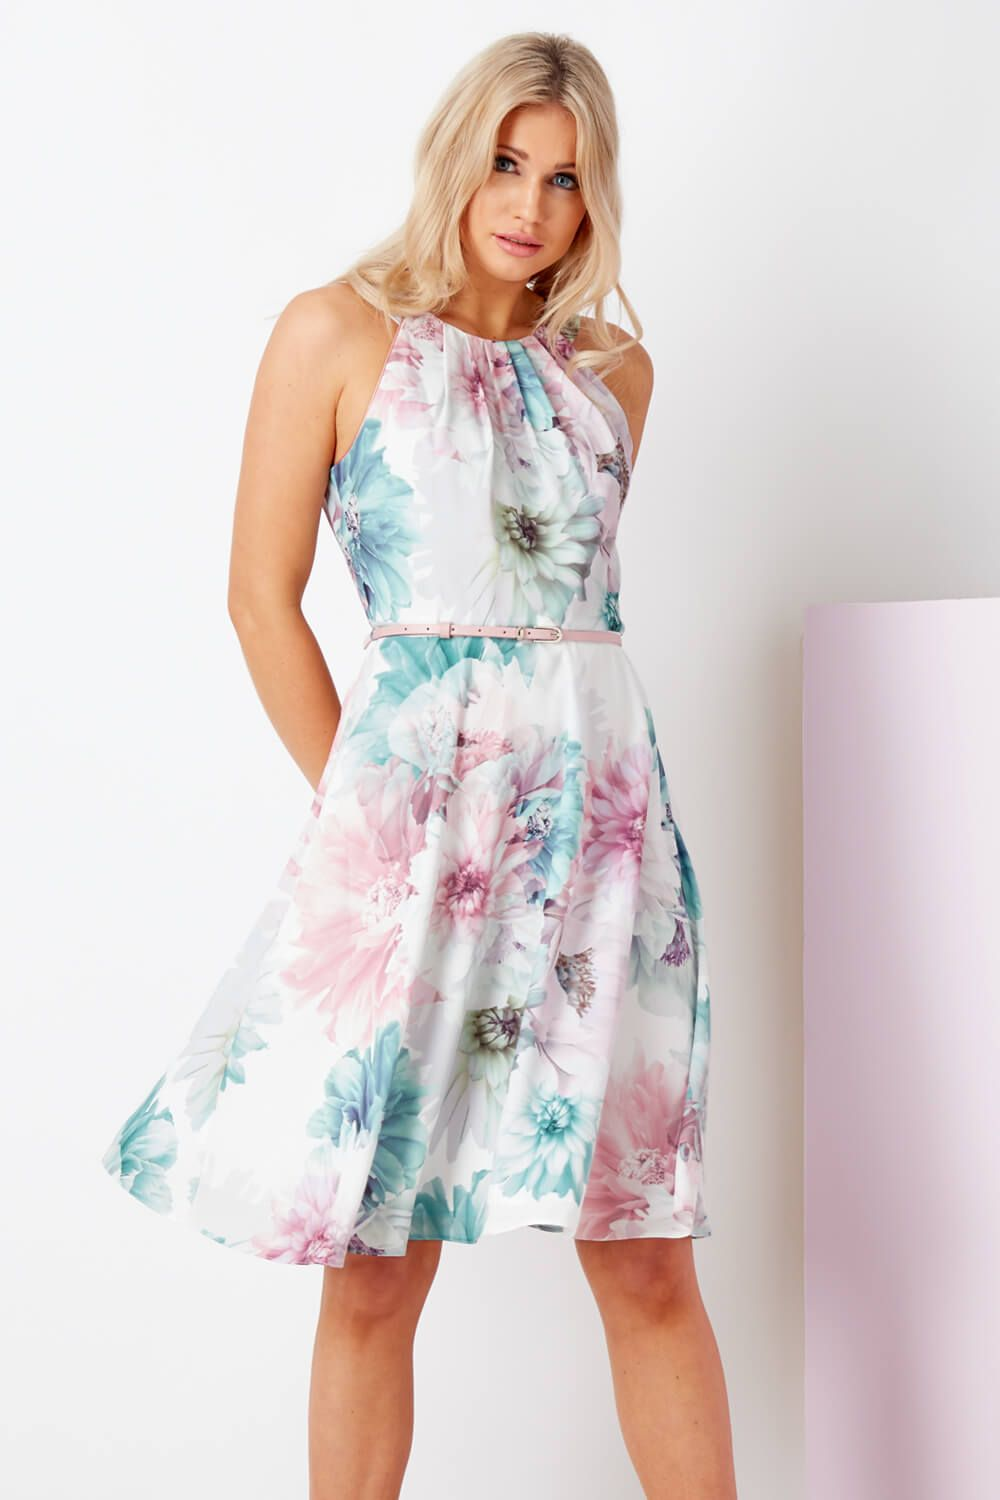 342656724f42 Floral Fit and Flare Dress with Belt - Free UK Delivery - 10 12 14 16 18 20  - - Romanoriginals.co.uk